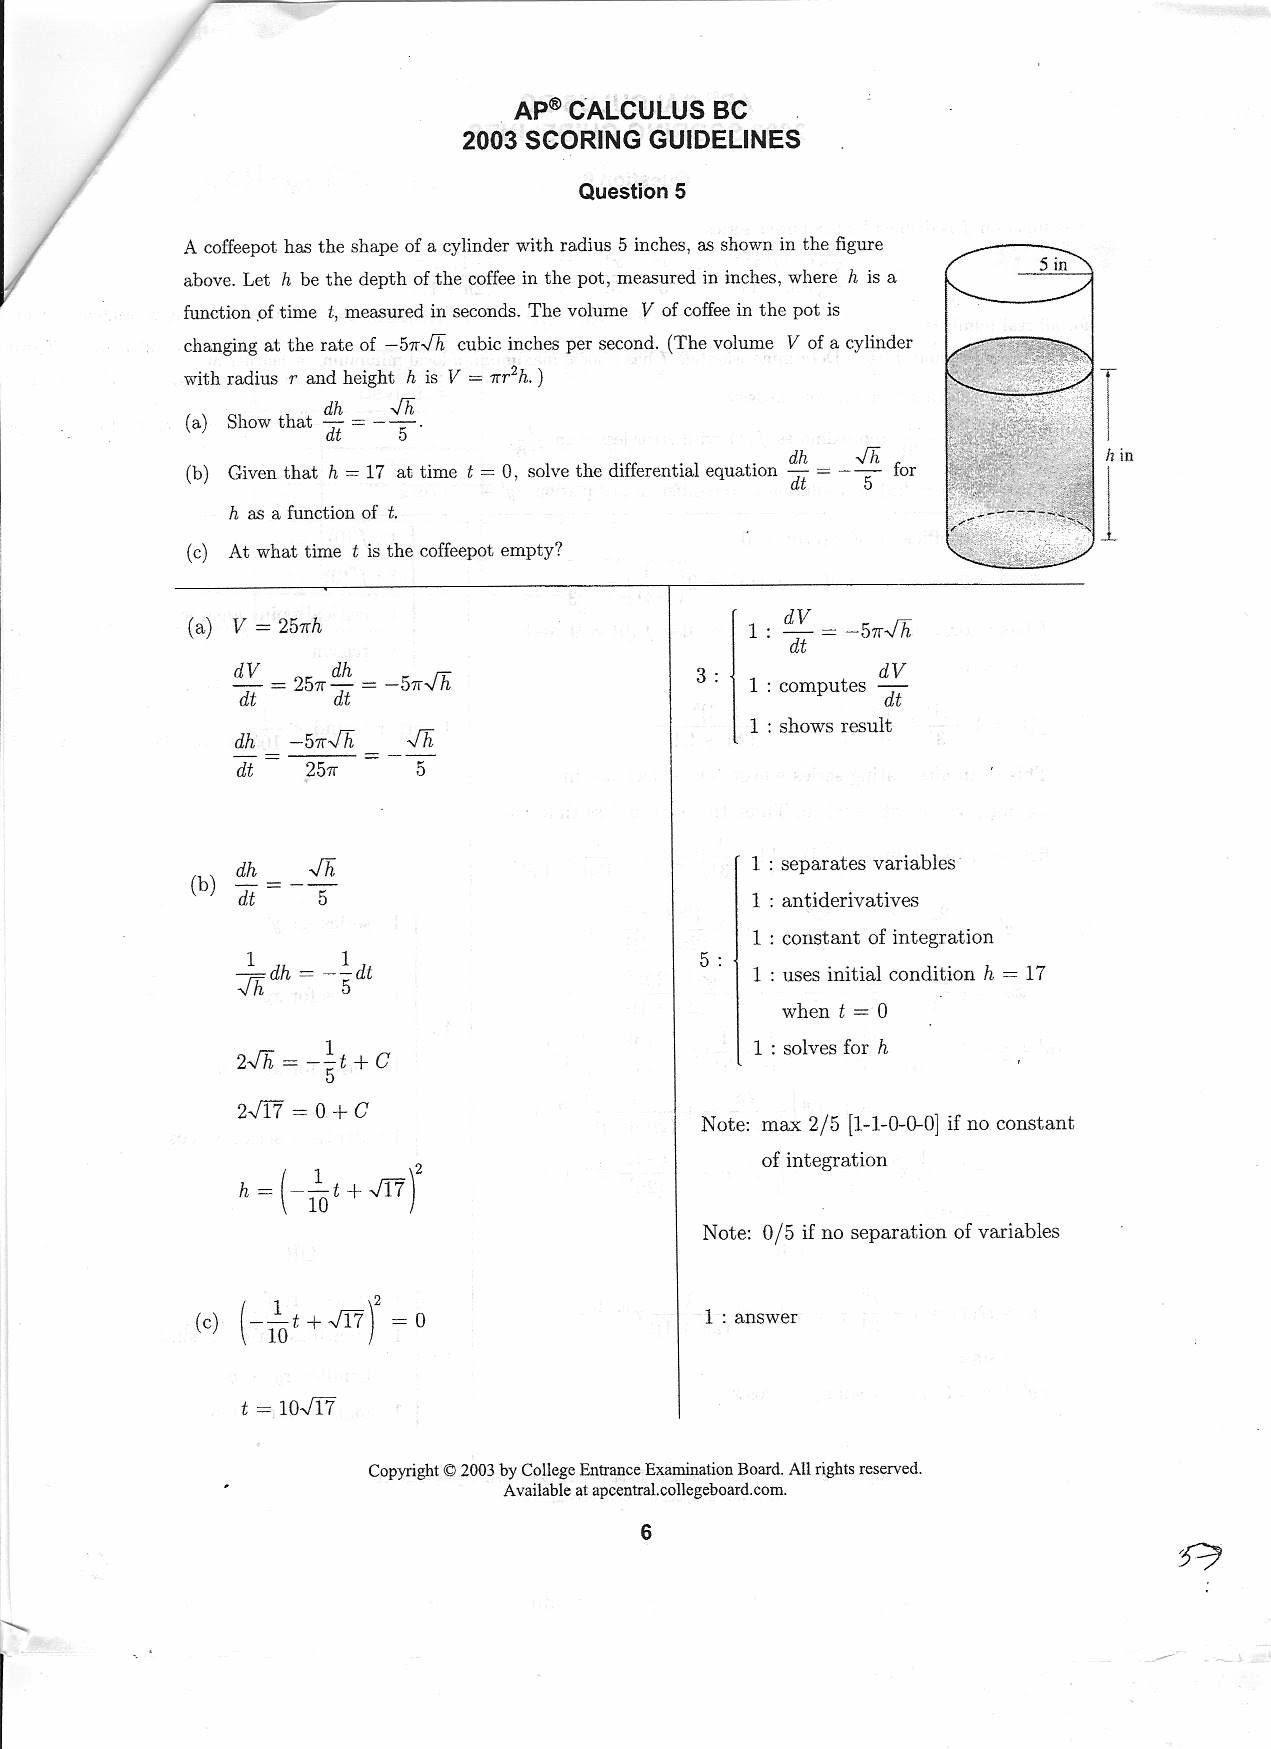 BC Calculus 2003 Question 5